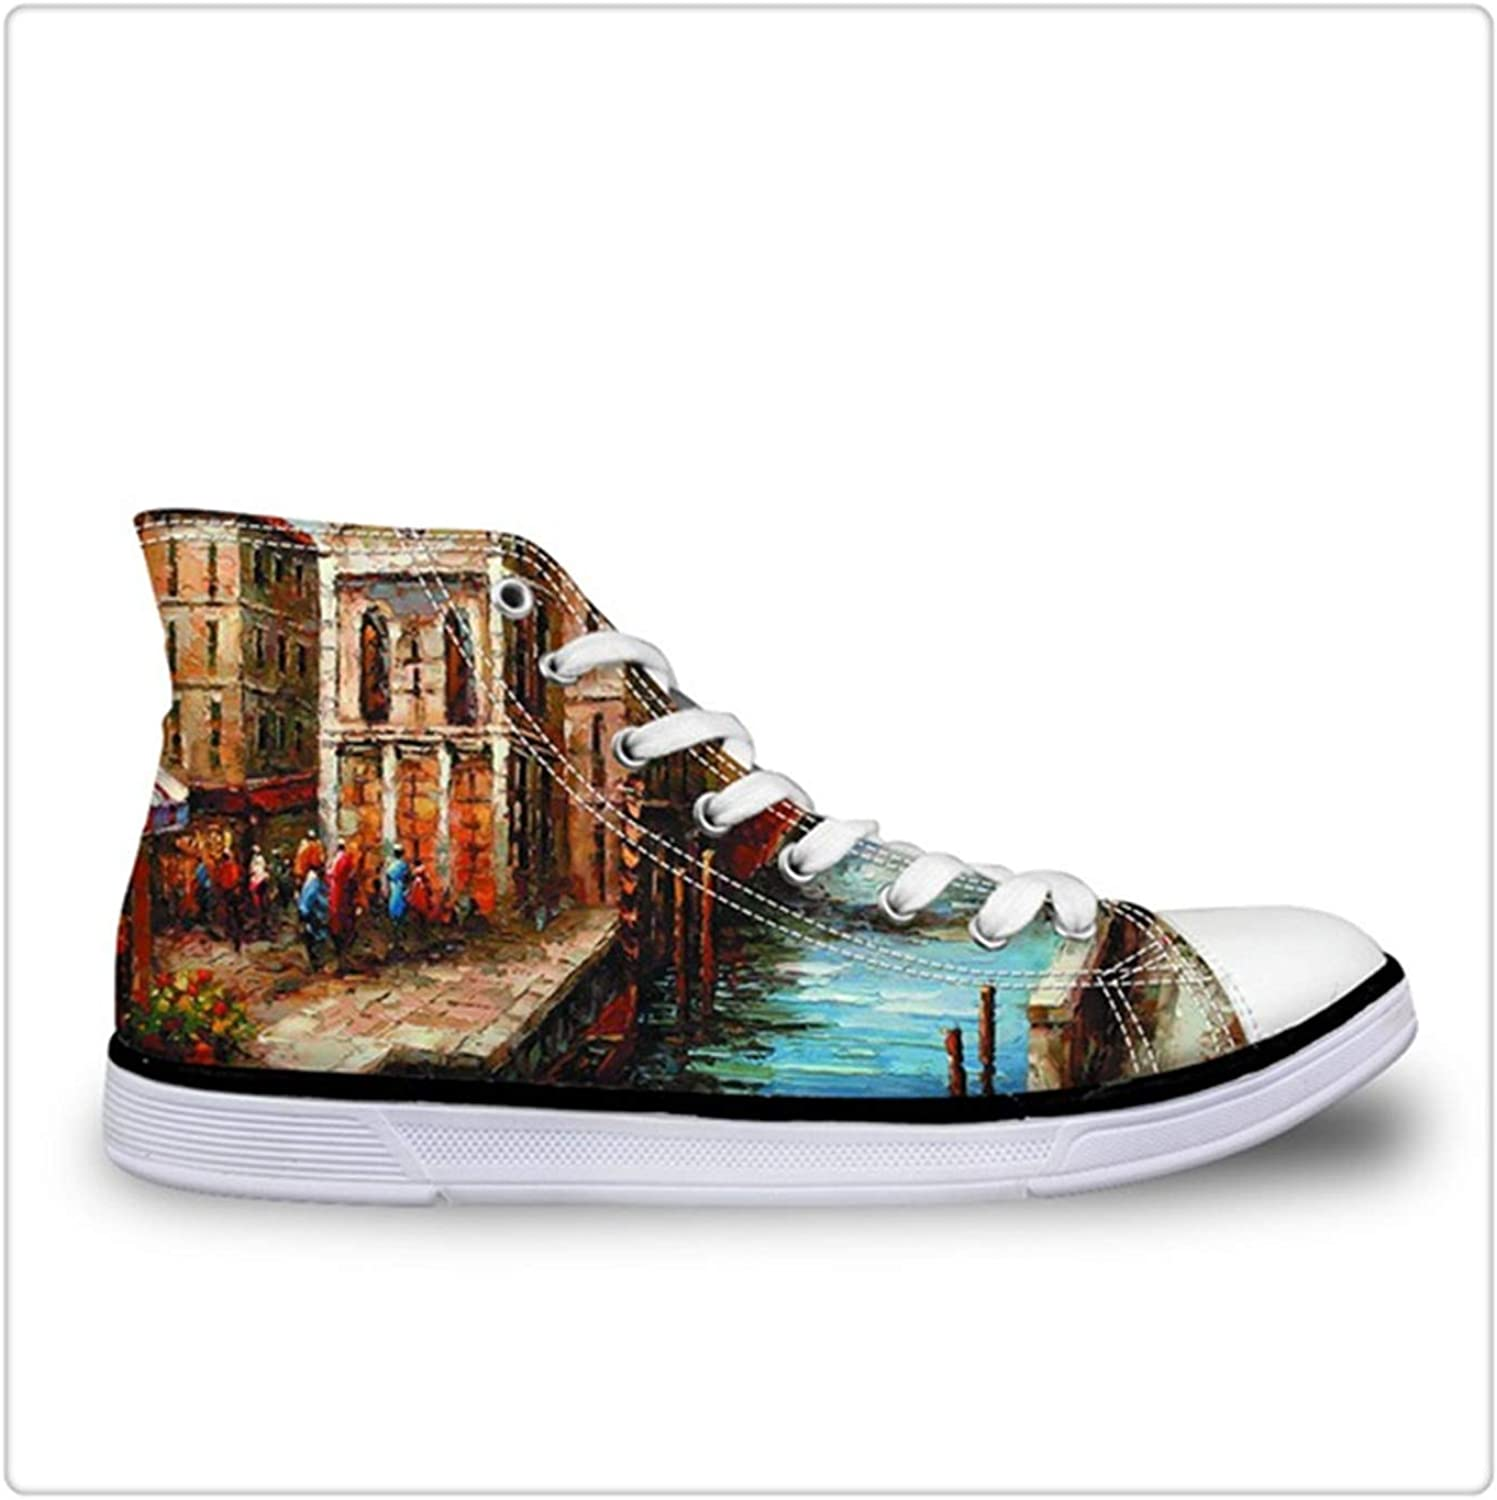 Dmoshibei Starry Night Flats shoes Women Fashion High-top Casual Canvas shoes Classic Vulcanize shoes Hand-Painted Print Flats HK1189AK 41